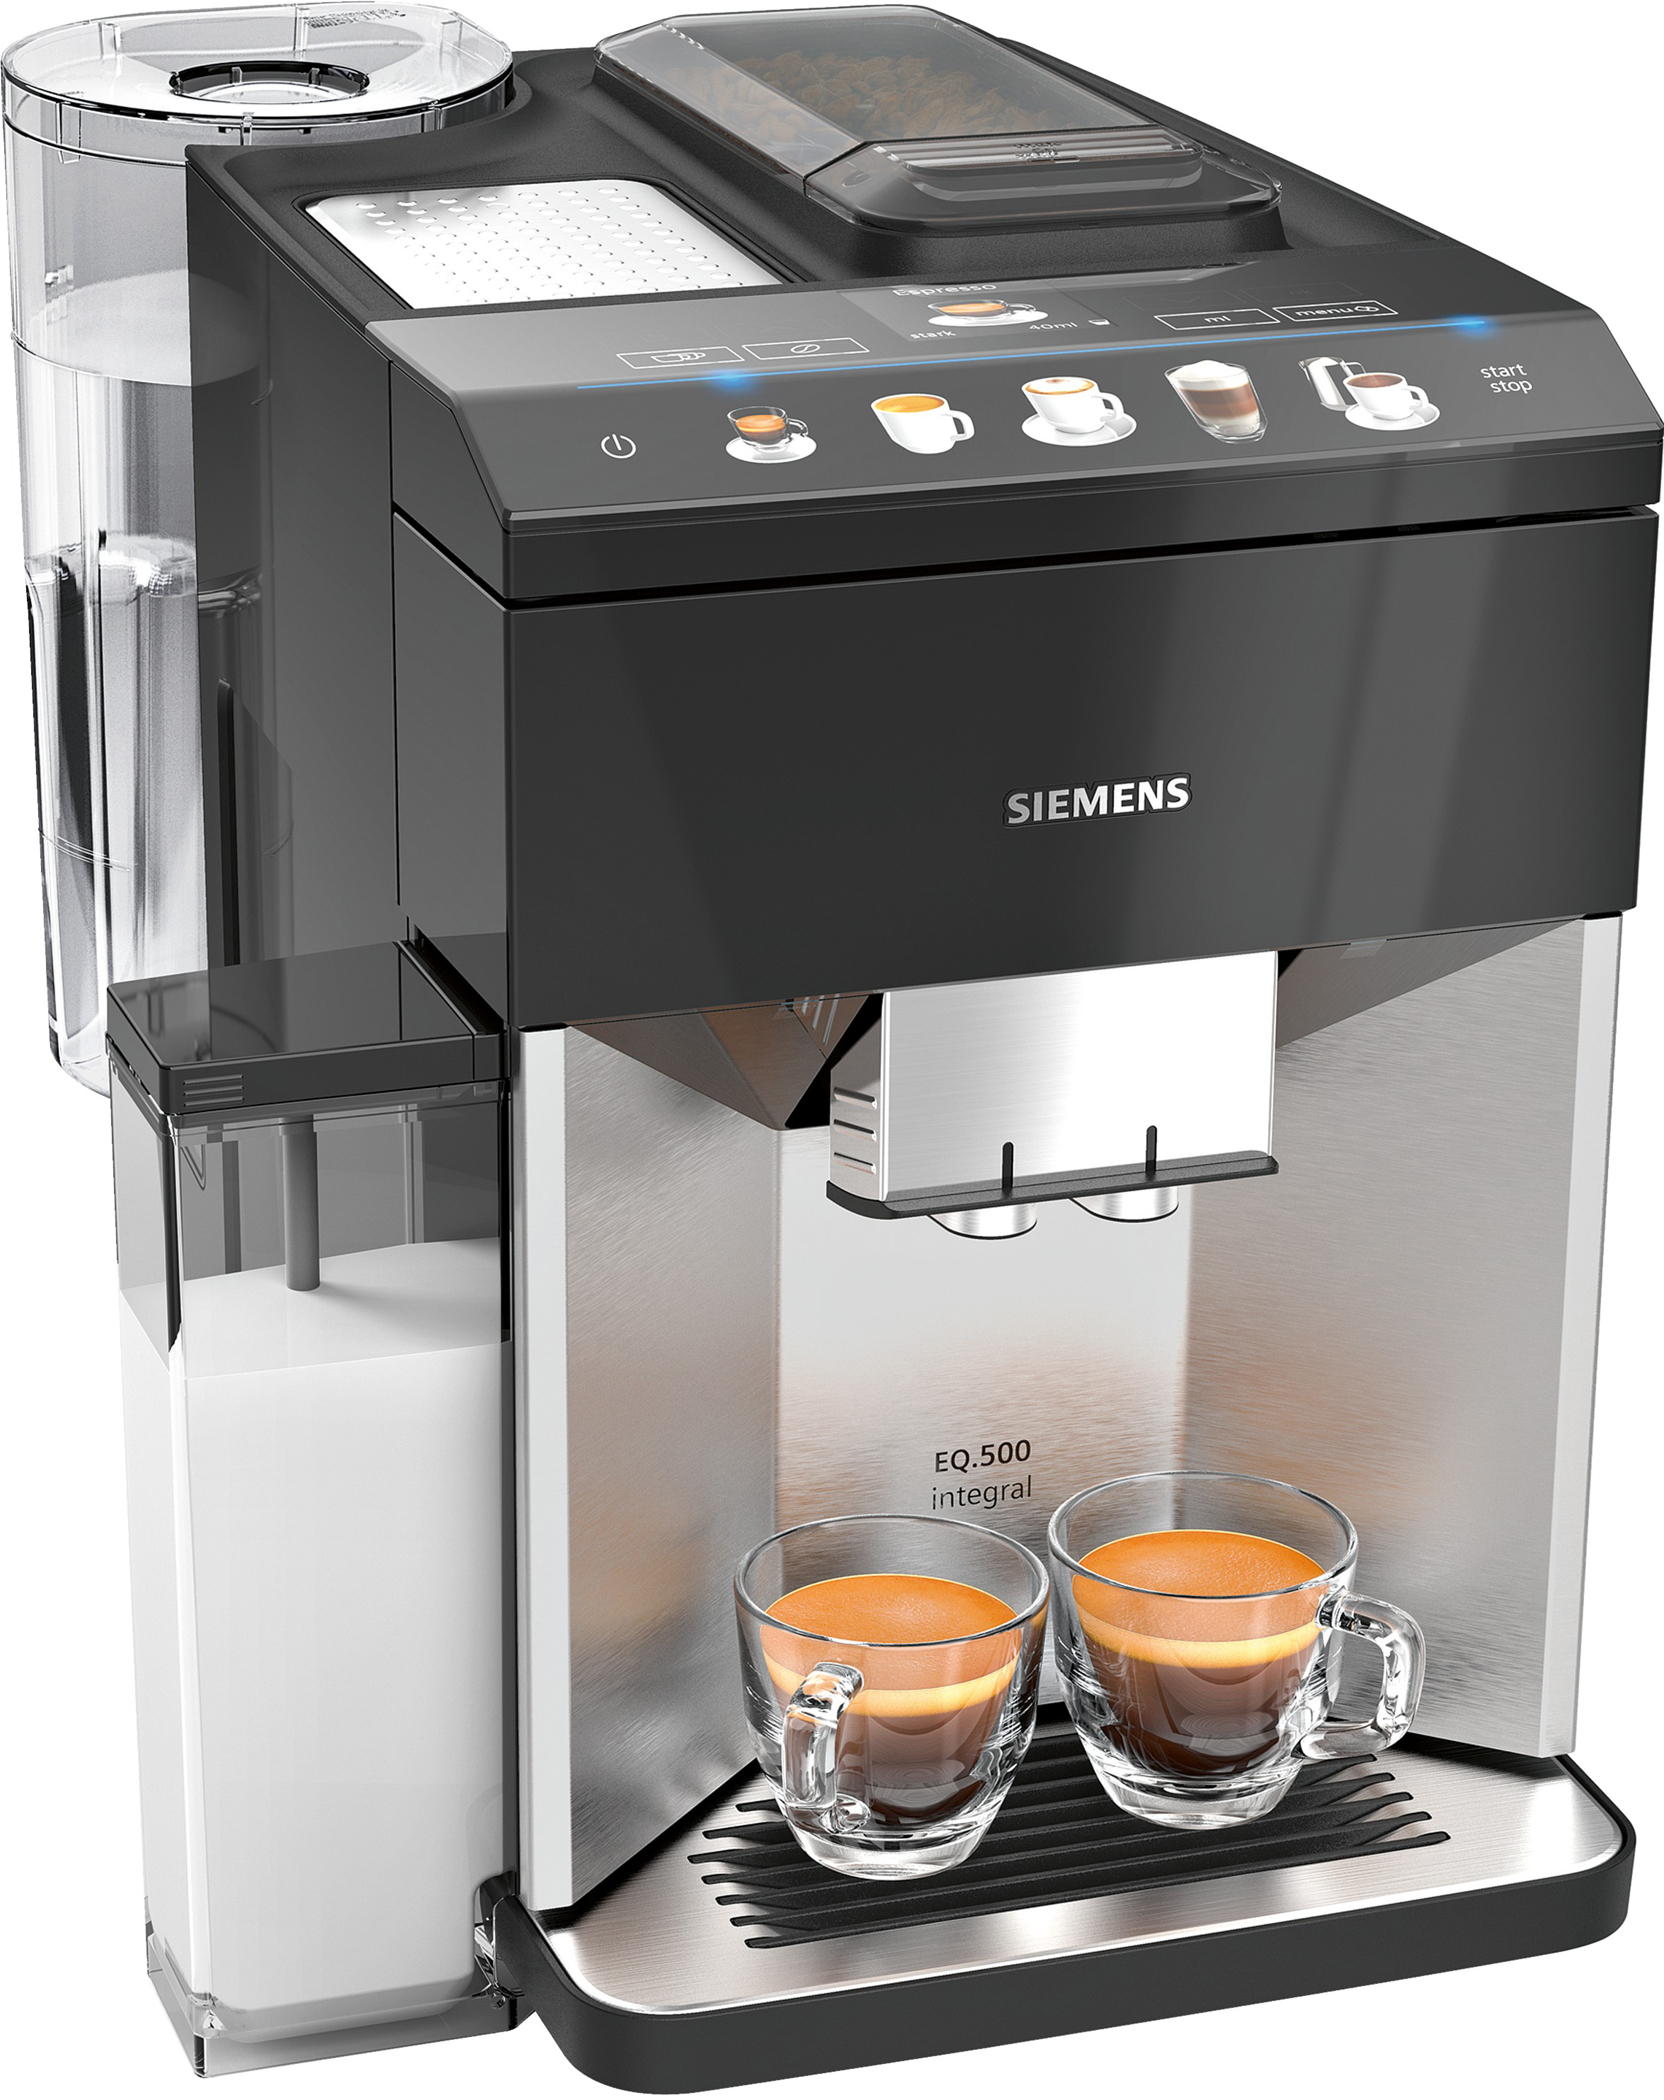 <h1>Siemens Kaffeevollautomat EQ.500 integral</h1><h3 style='font-size: 20px; margin: 0px 0px 15px 0px;'> - coffeeSelect TFT-Display, Keramikmahlwerk</h3>